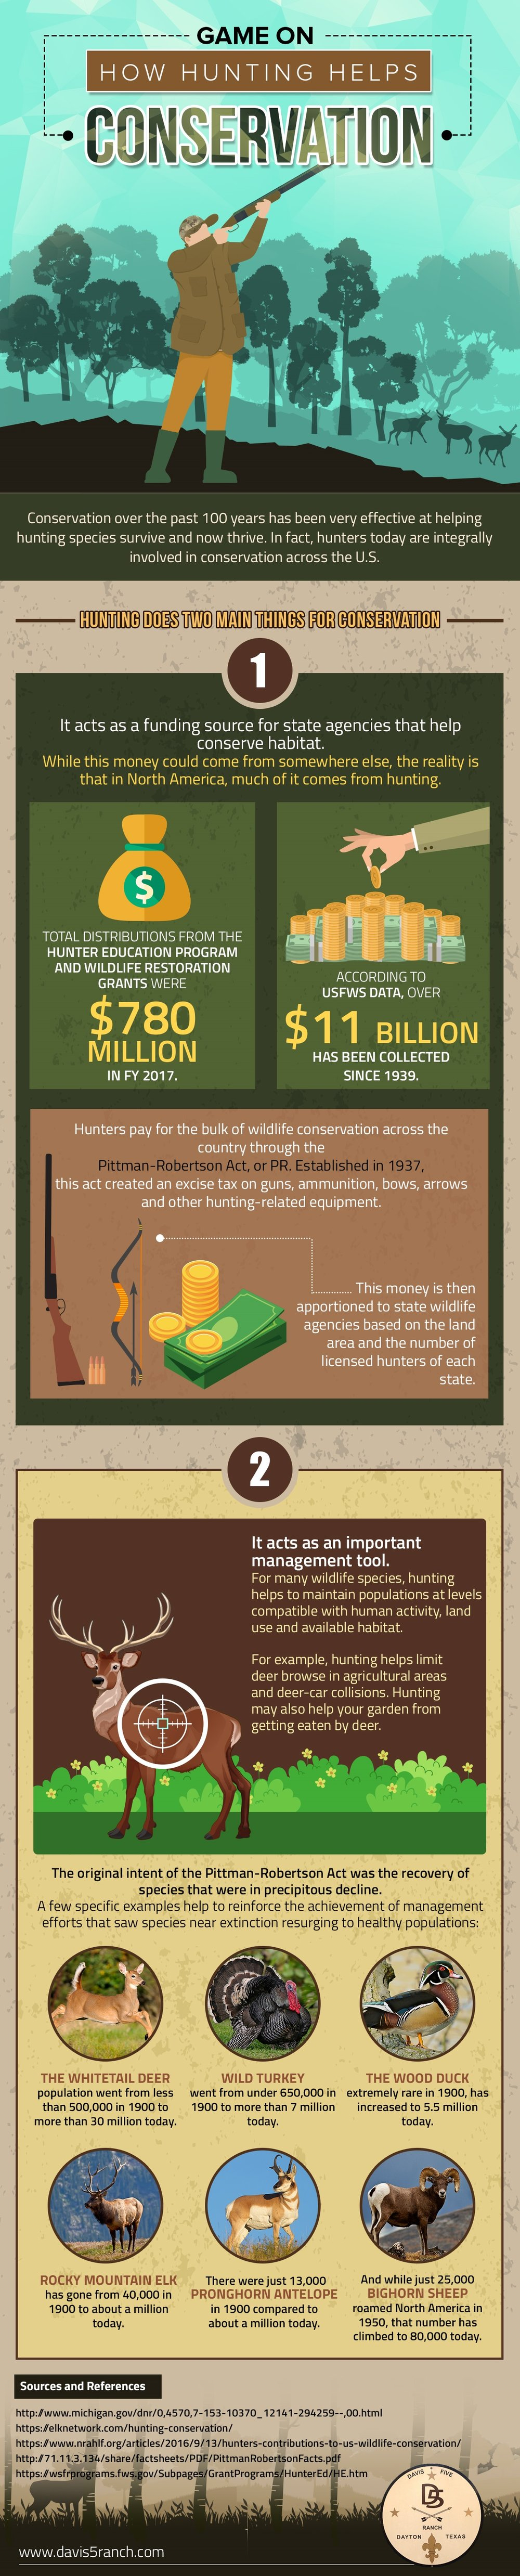 Game On: How Hunting Helps Conservation